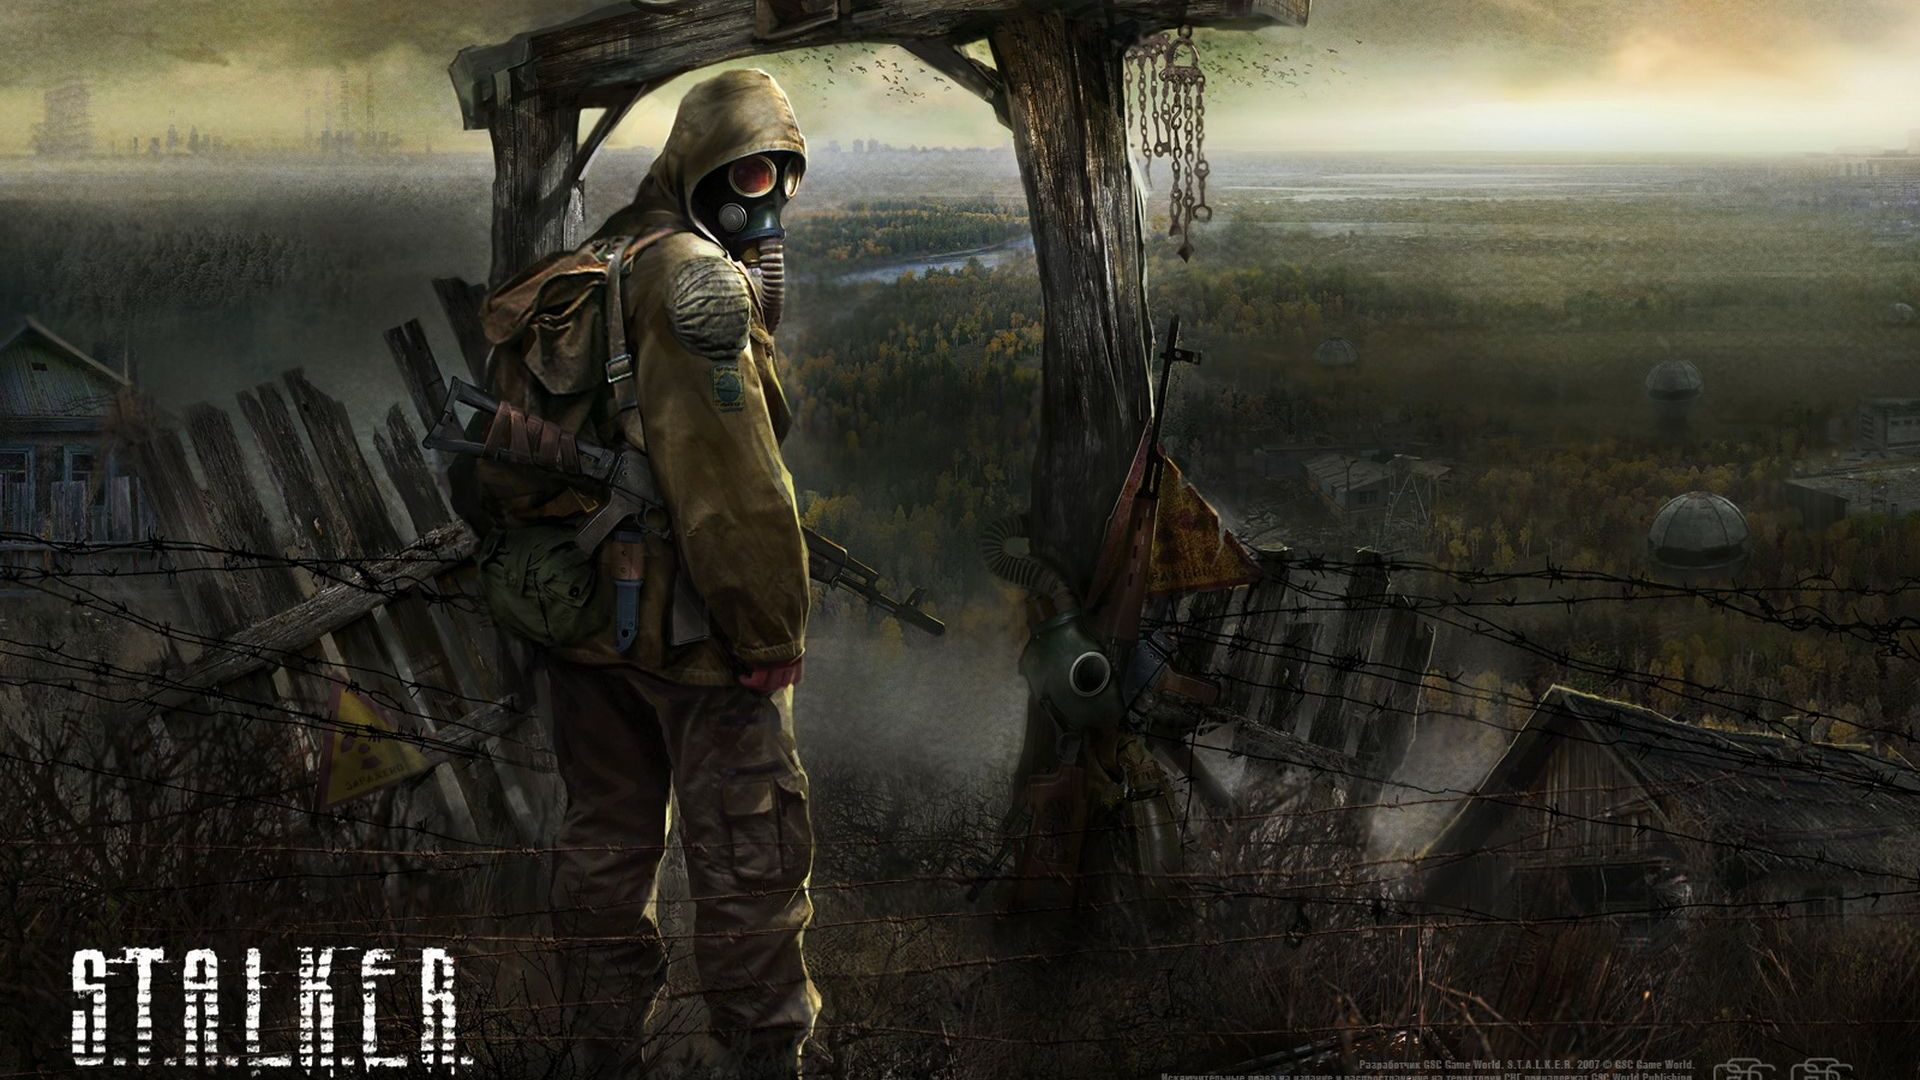 Арт к игре S.T.A.L.K.E.R.: Shadow of Chernobyl